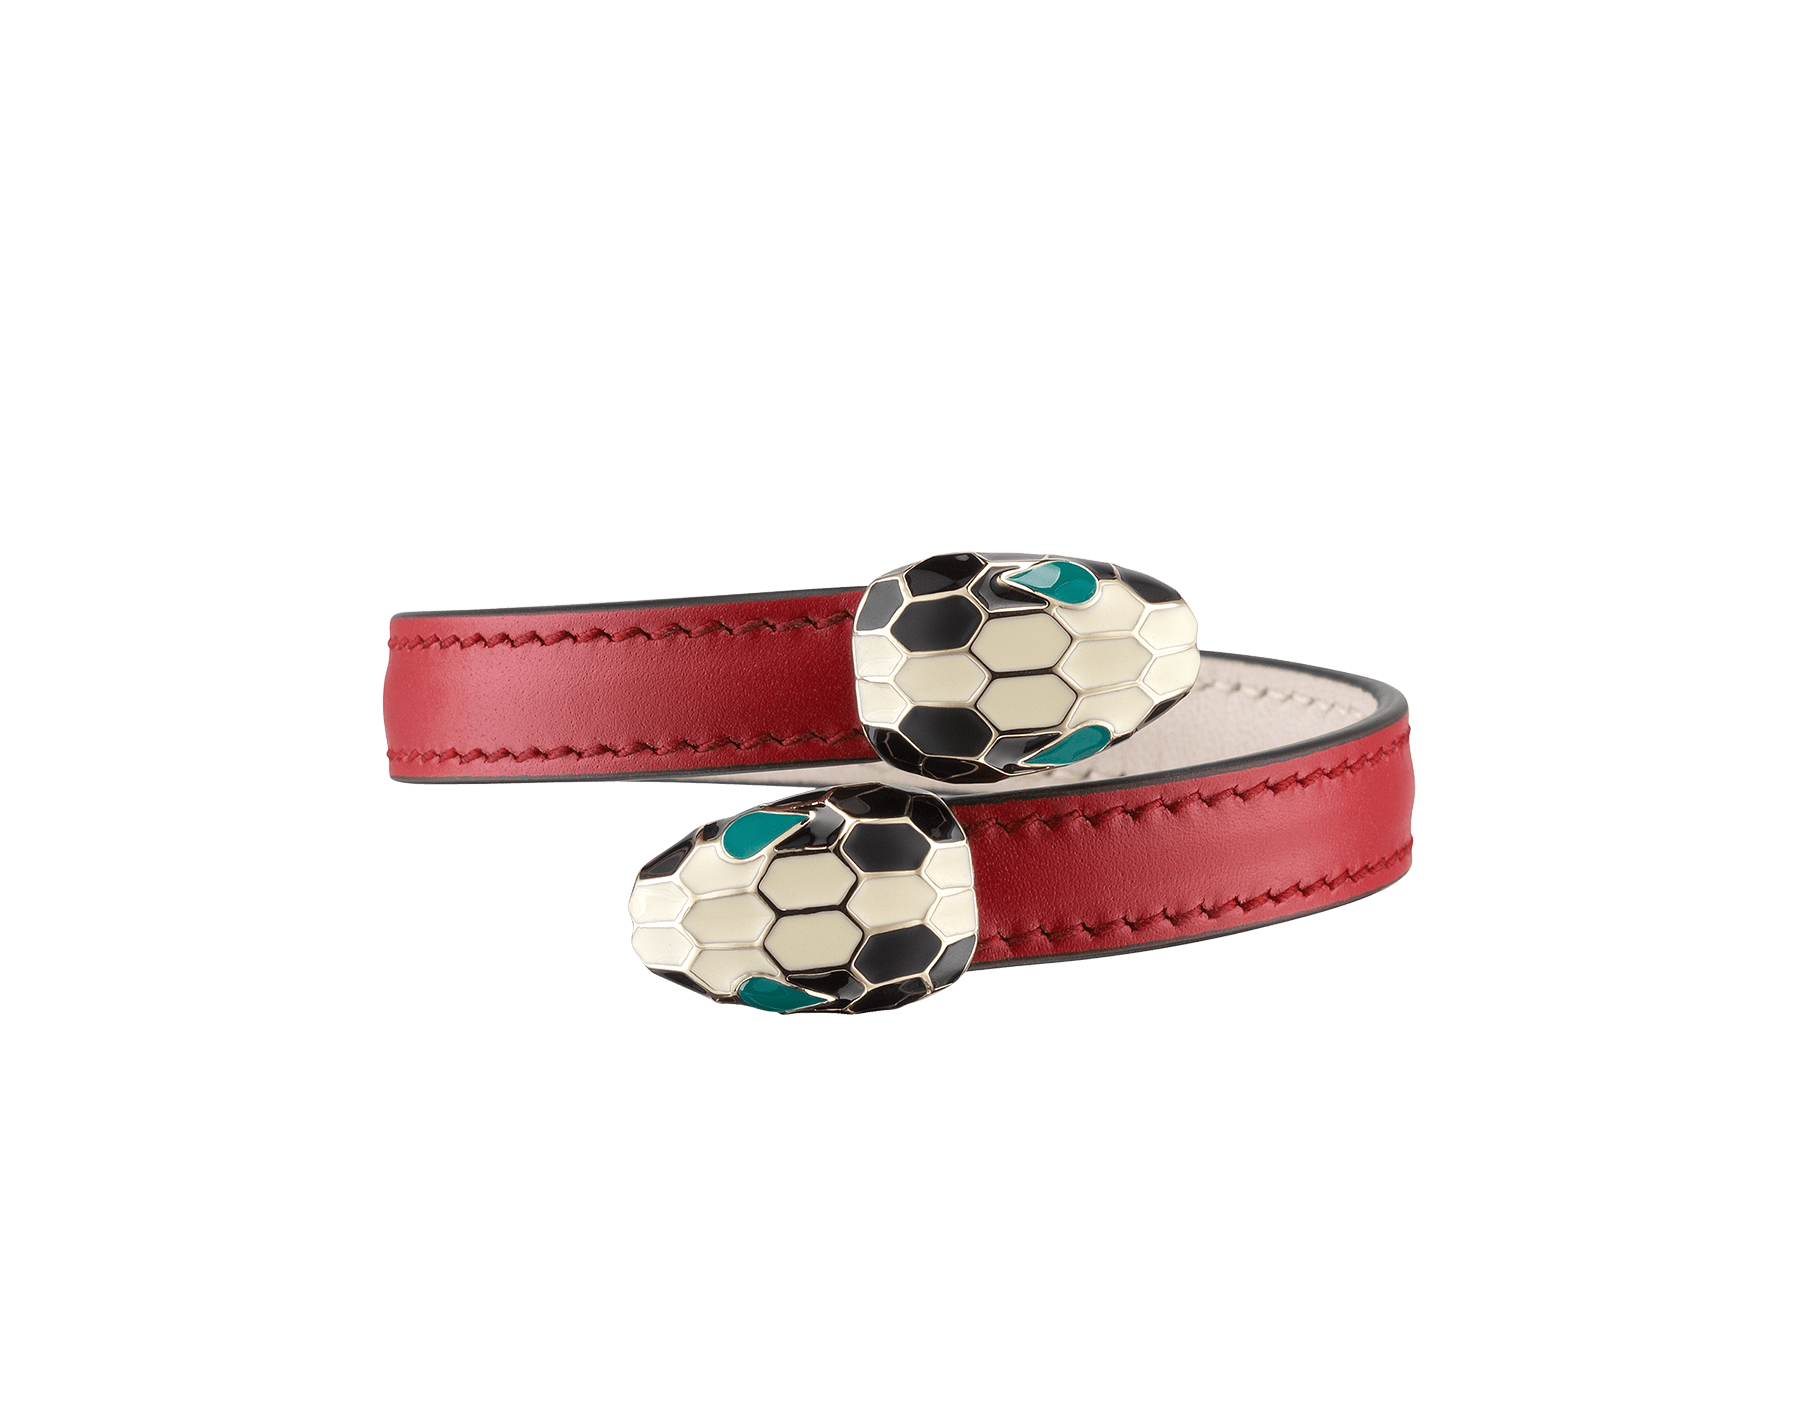 Serpenti Forever soft bangle bracelet in ruby red calf leather, with brass light gold plated hardware. Iconic contraire snakehead décor in black and white enamel, with green enamel eyes SerpSoftContr-CL-RR image 1